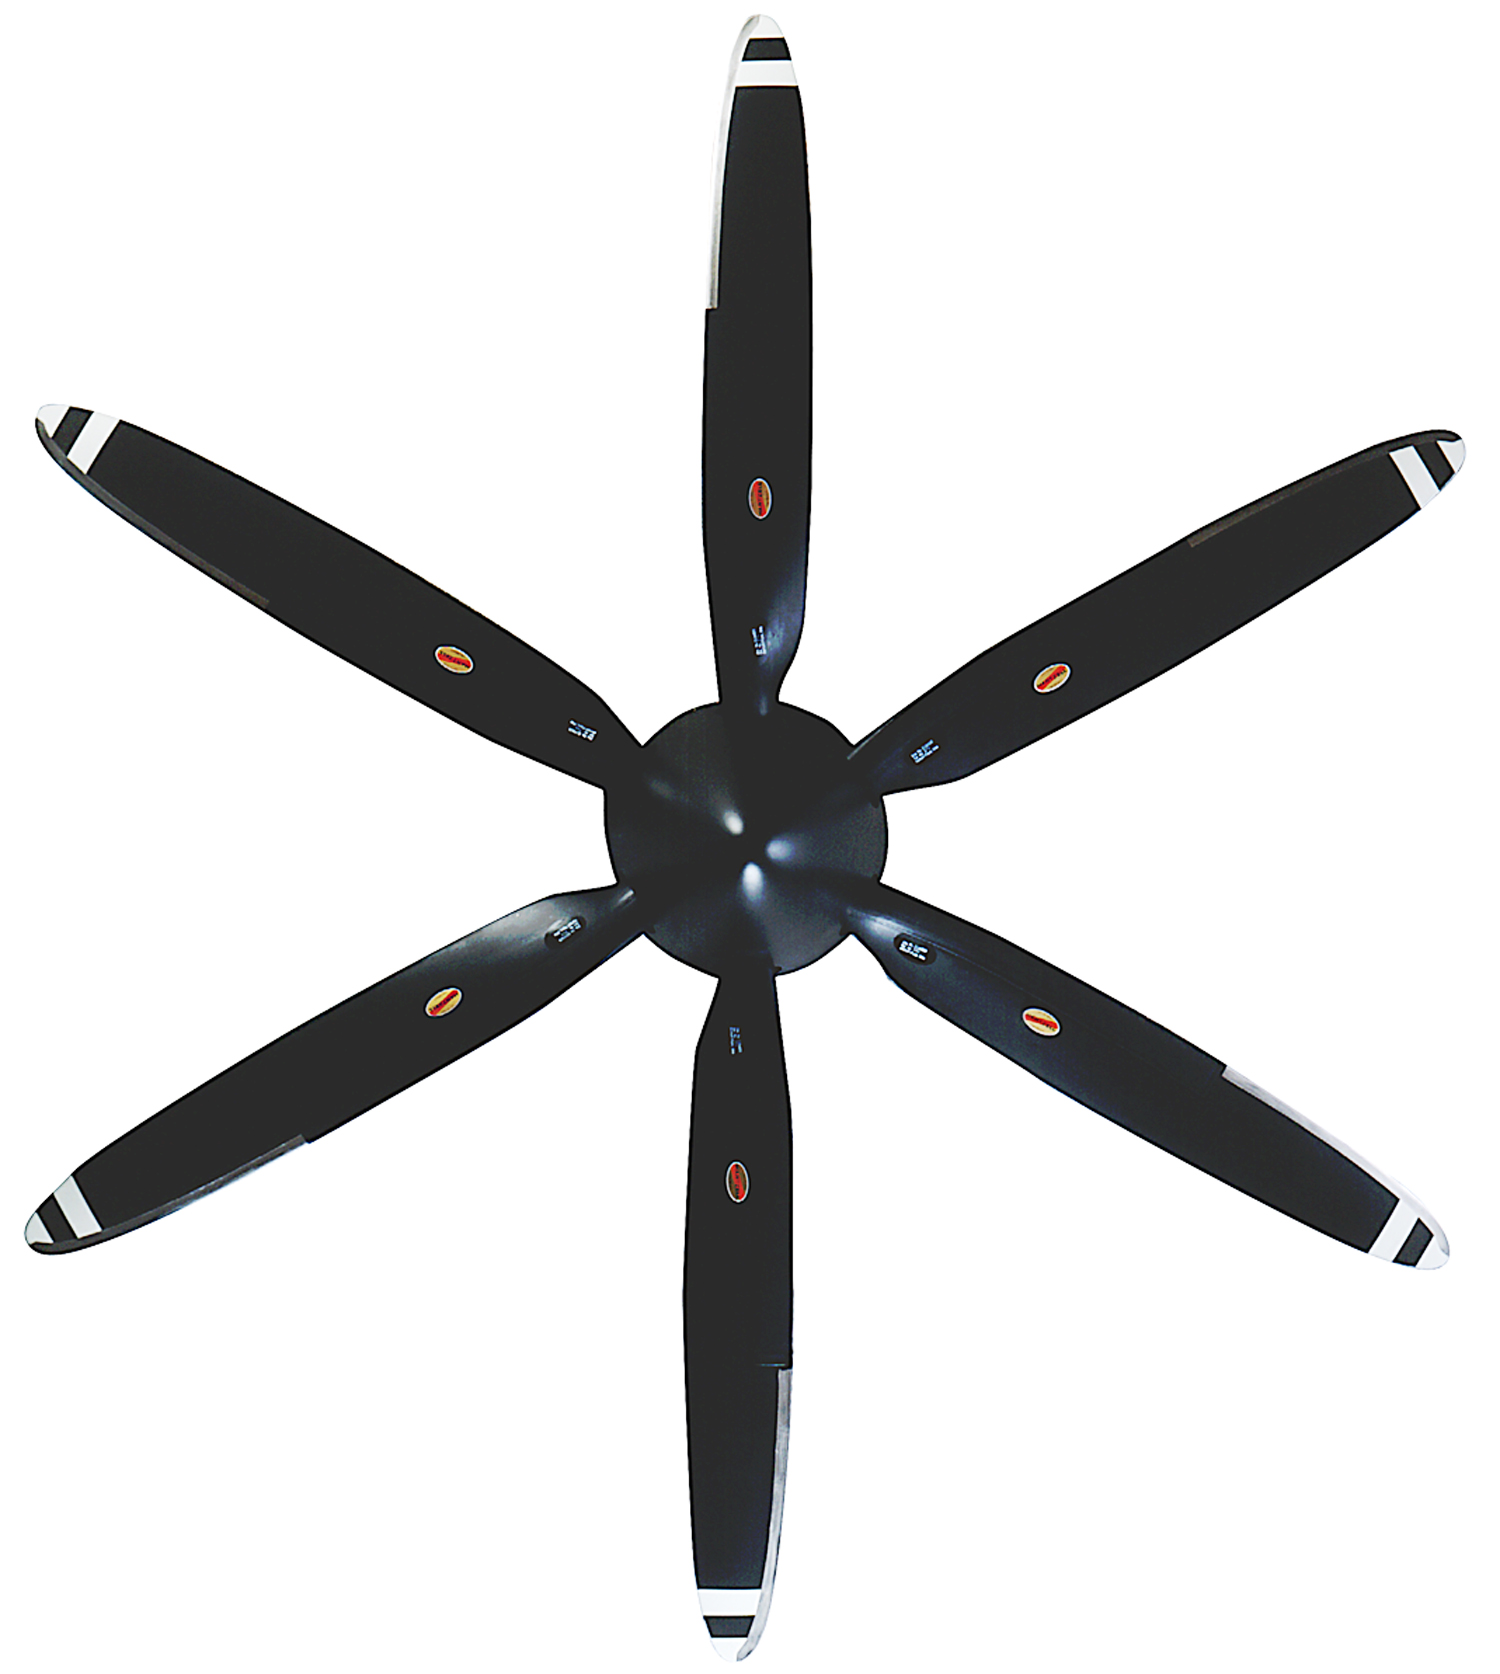 helicopter ceiling fan for sale with 12669 on 2 in addition Watch together with Ventilateur De Plafond Ete  me Hiver additionally Outer Tie Rod Diagram also Contemporary Interior Door Styles For Homes.